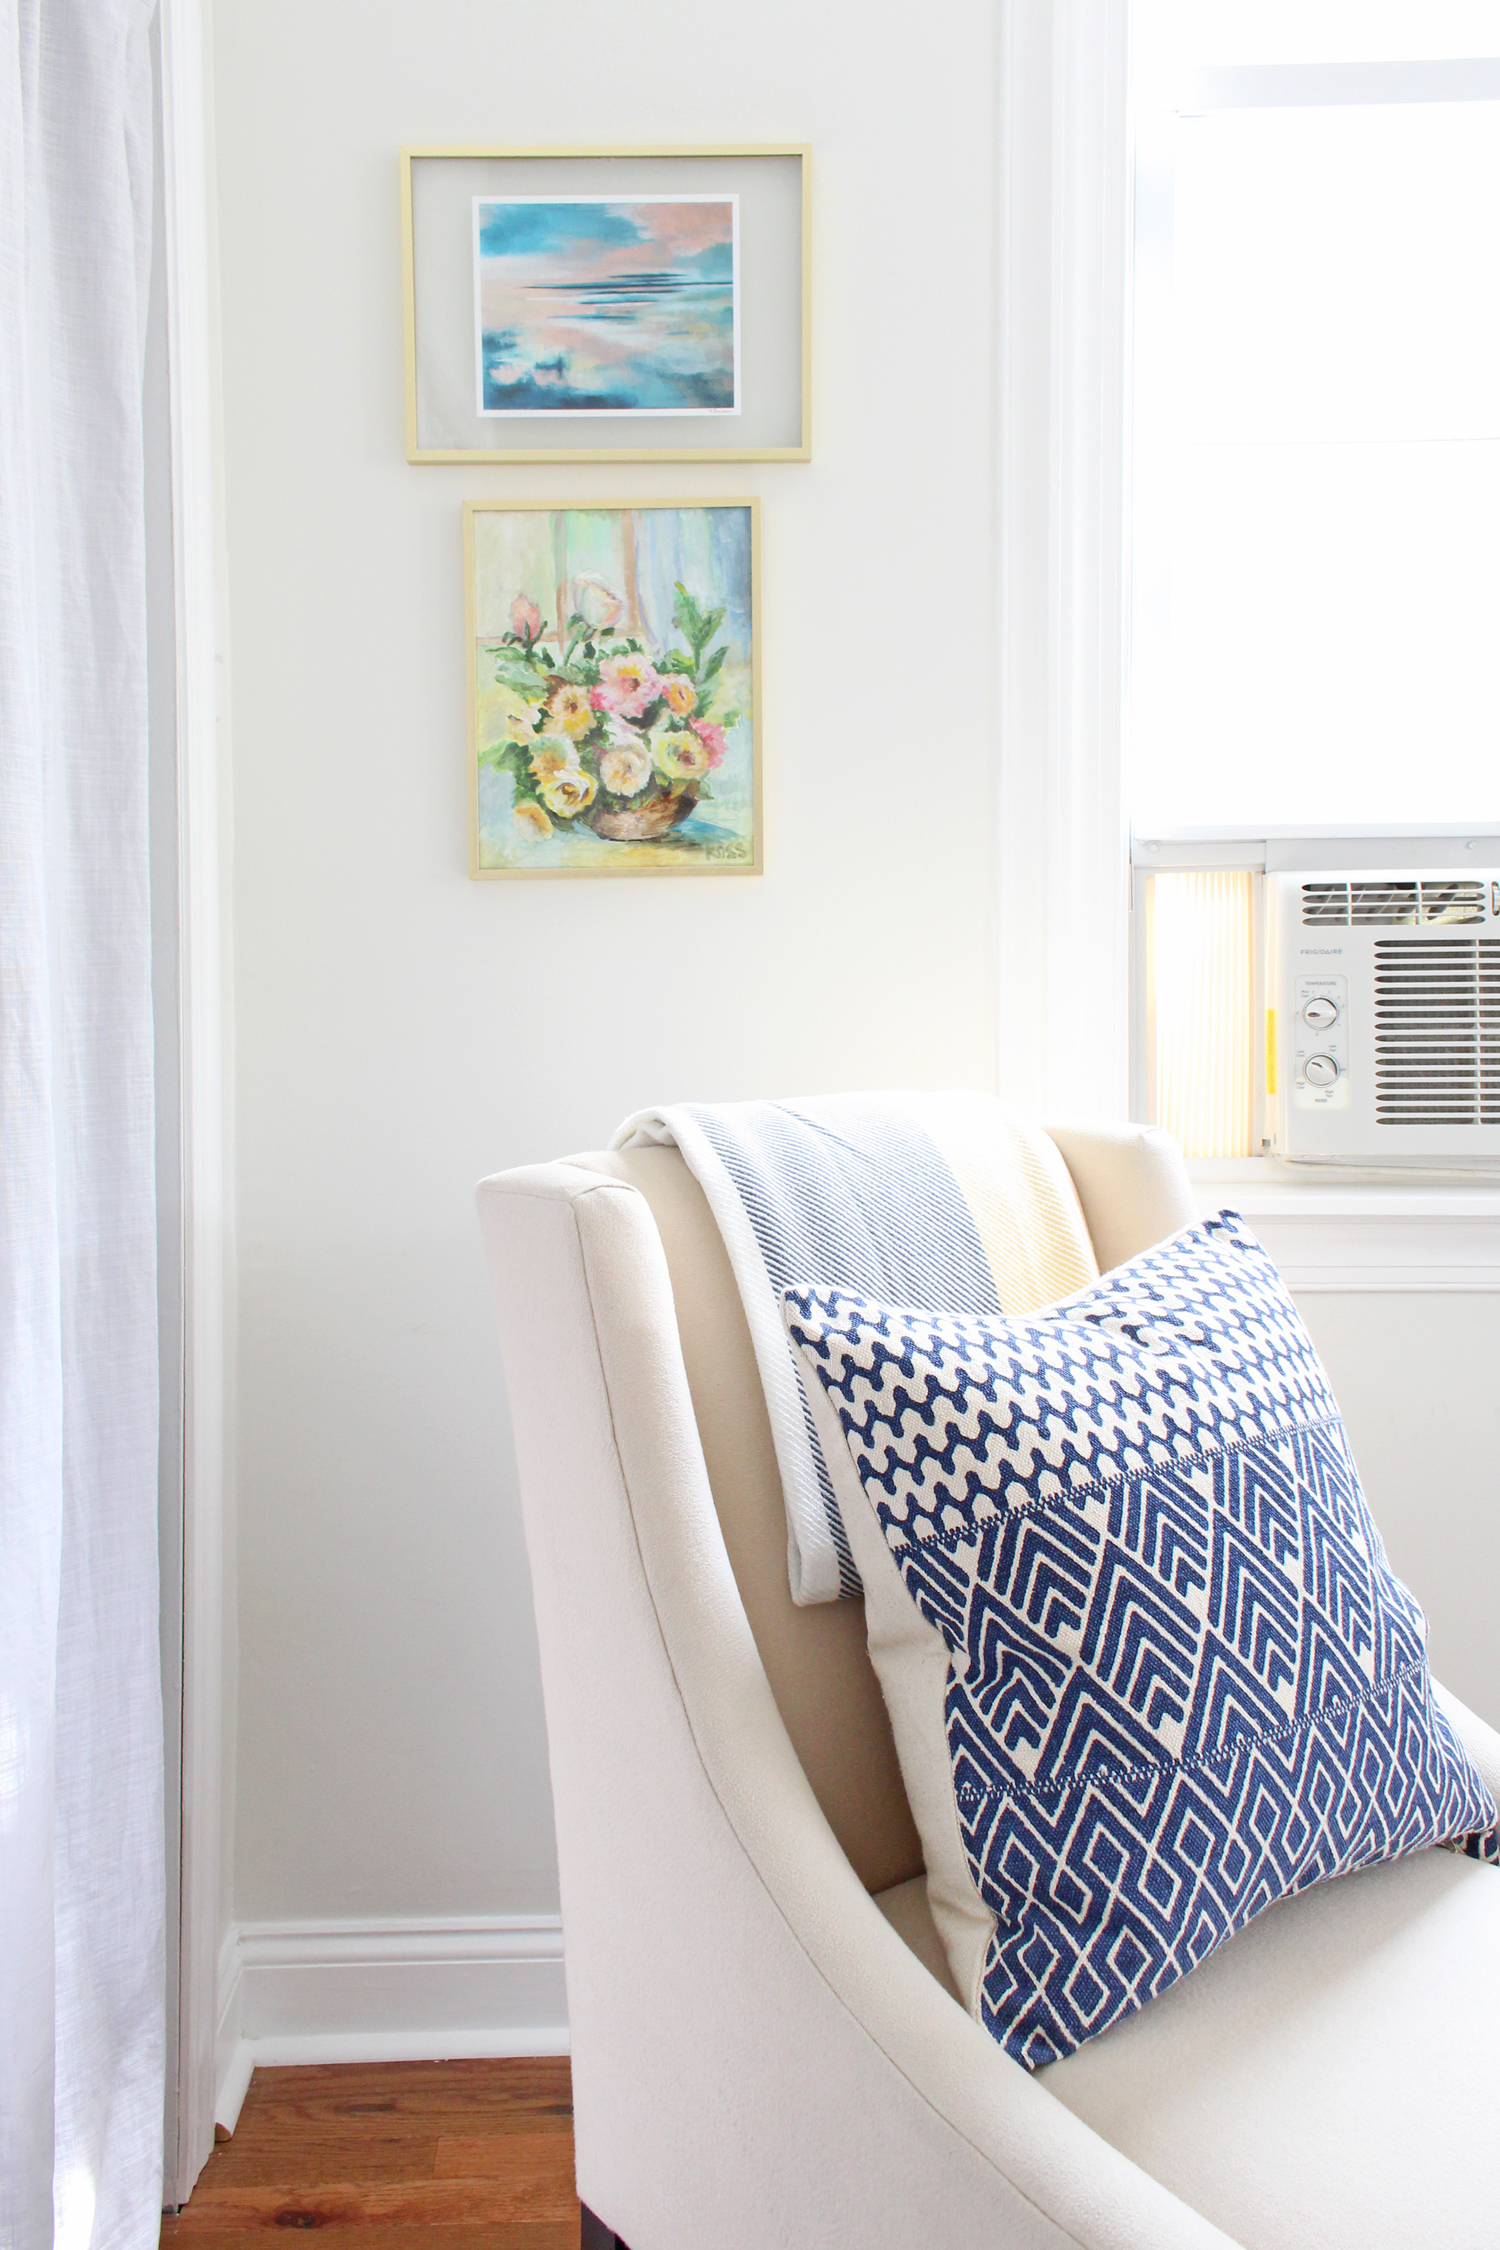 An abstract print from Modern South Studio and a vintage botanical painting add color and style to this corner of the office.